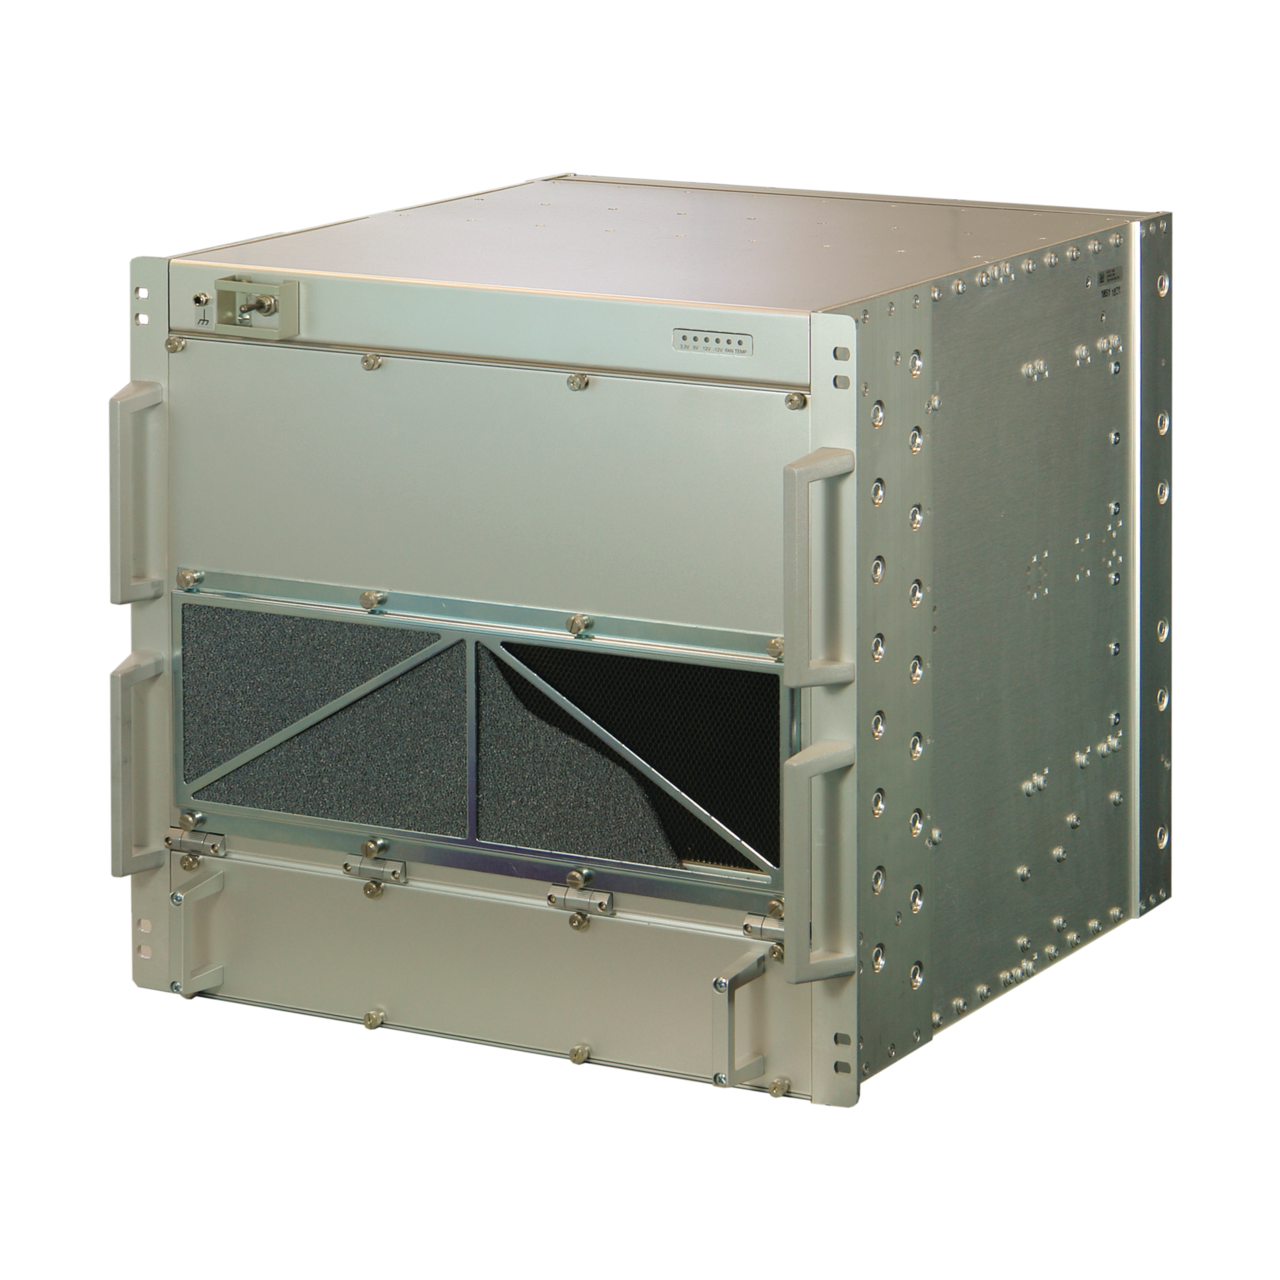 Image for VME64x-Based System, Rugged, 10 U, 12 Slot, with Rear I/O from nVent SCHROFF | Europe, Middle East, Africa and India